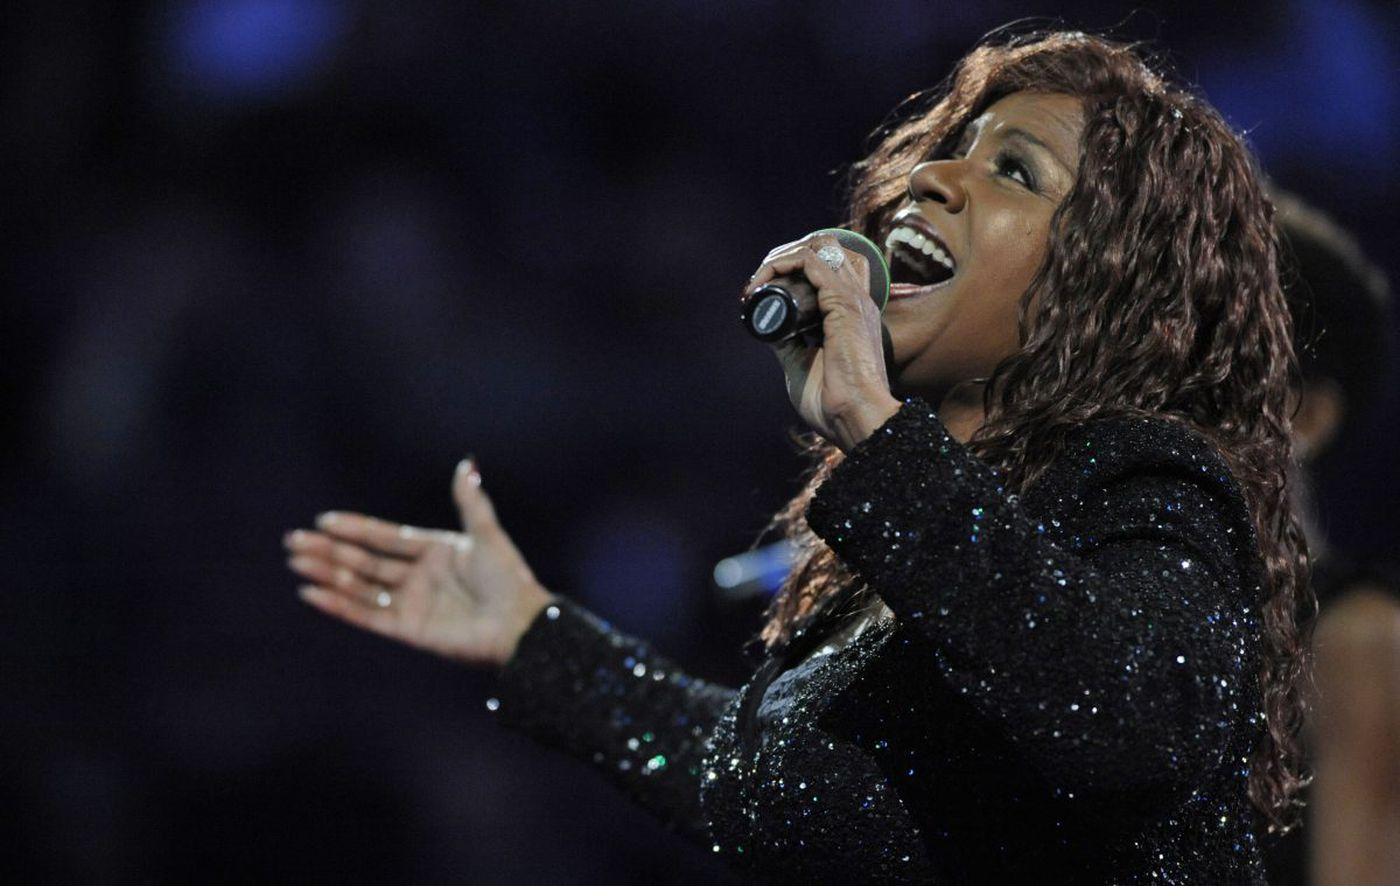 Gloria Gaynor will headline Ocean City's Night in Venice, and yes she'll sing 'I Will Survive'